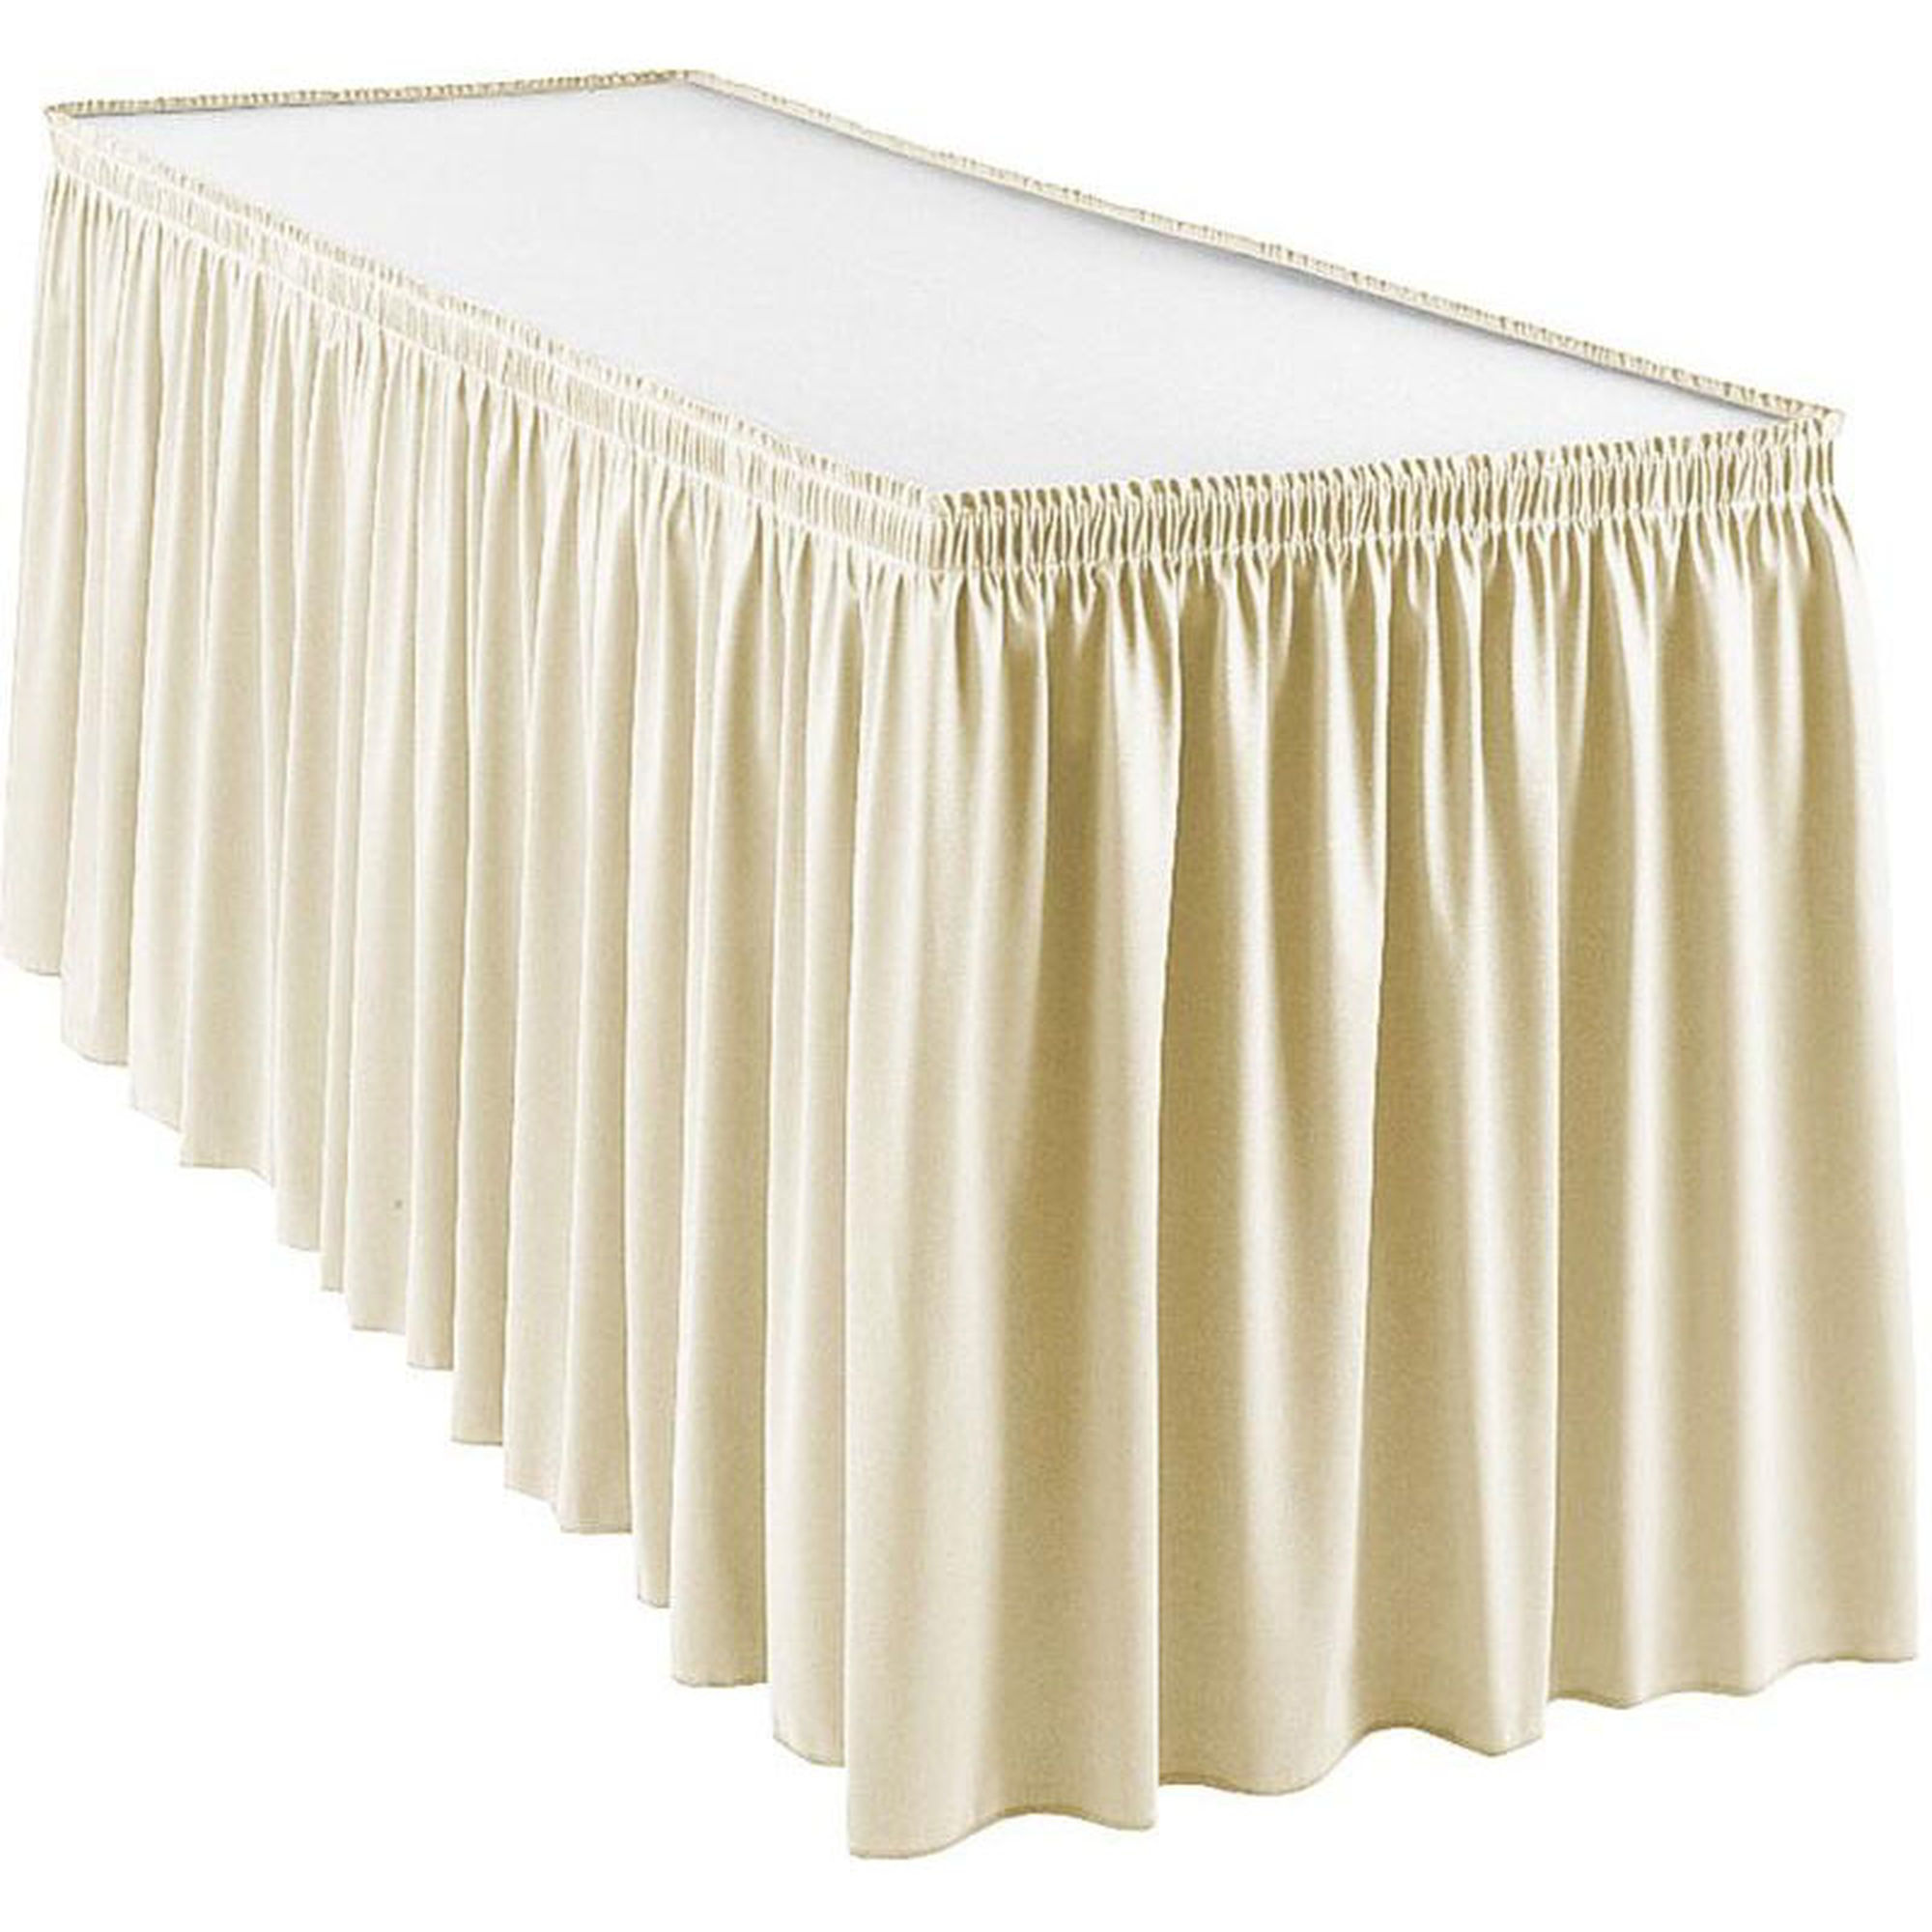 round tablecloth square table luxury elegant dining ivory pleated skirt bne accent skirts black glass lamp mini bedside teak patio furniture living room slim hallway cabinet